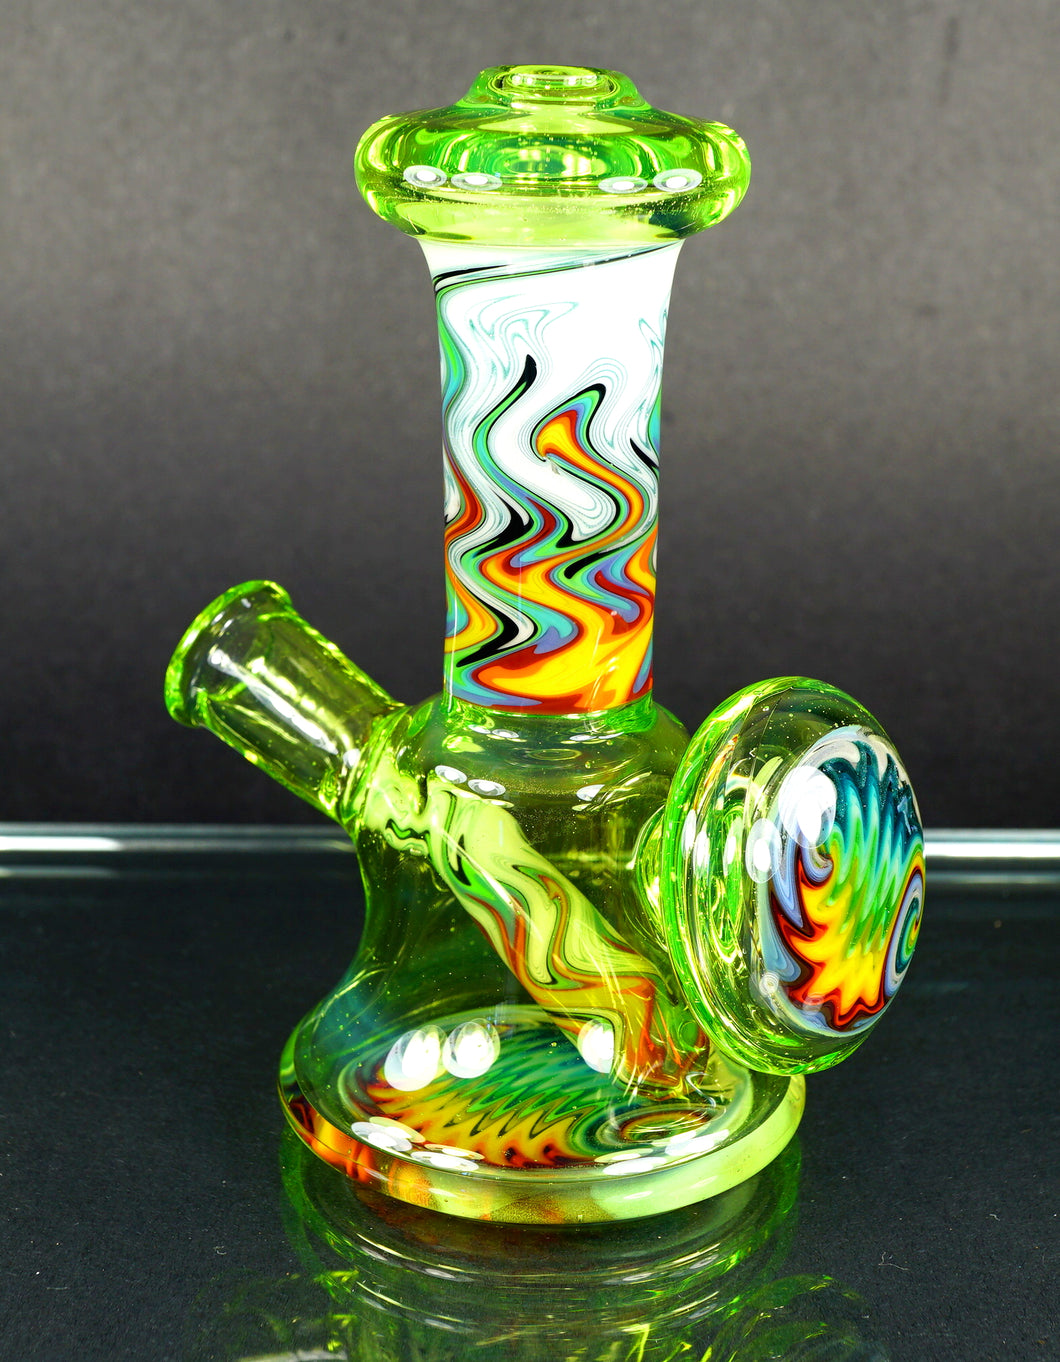 Gus Glass Subslime Green & Rainbow Fire Wig Wags Micro